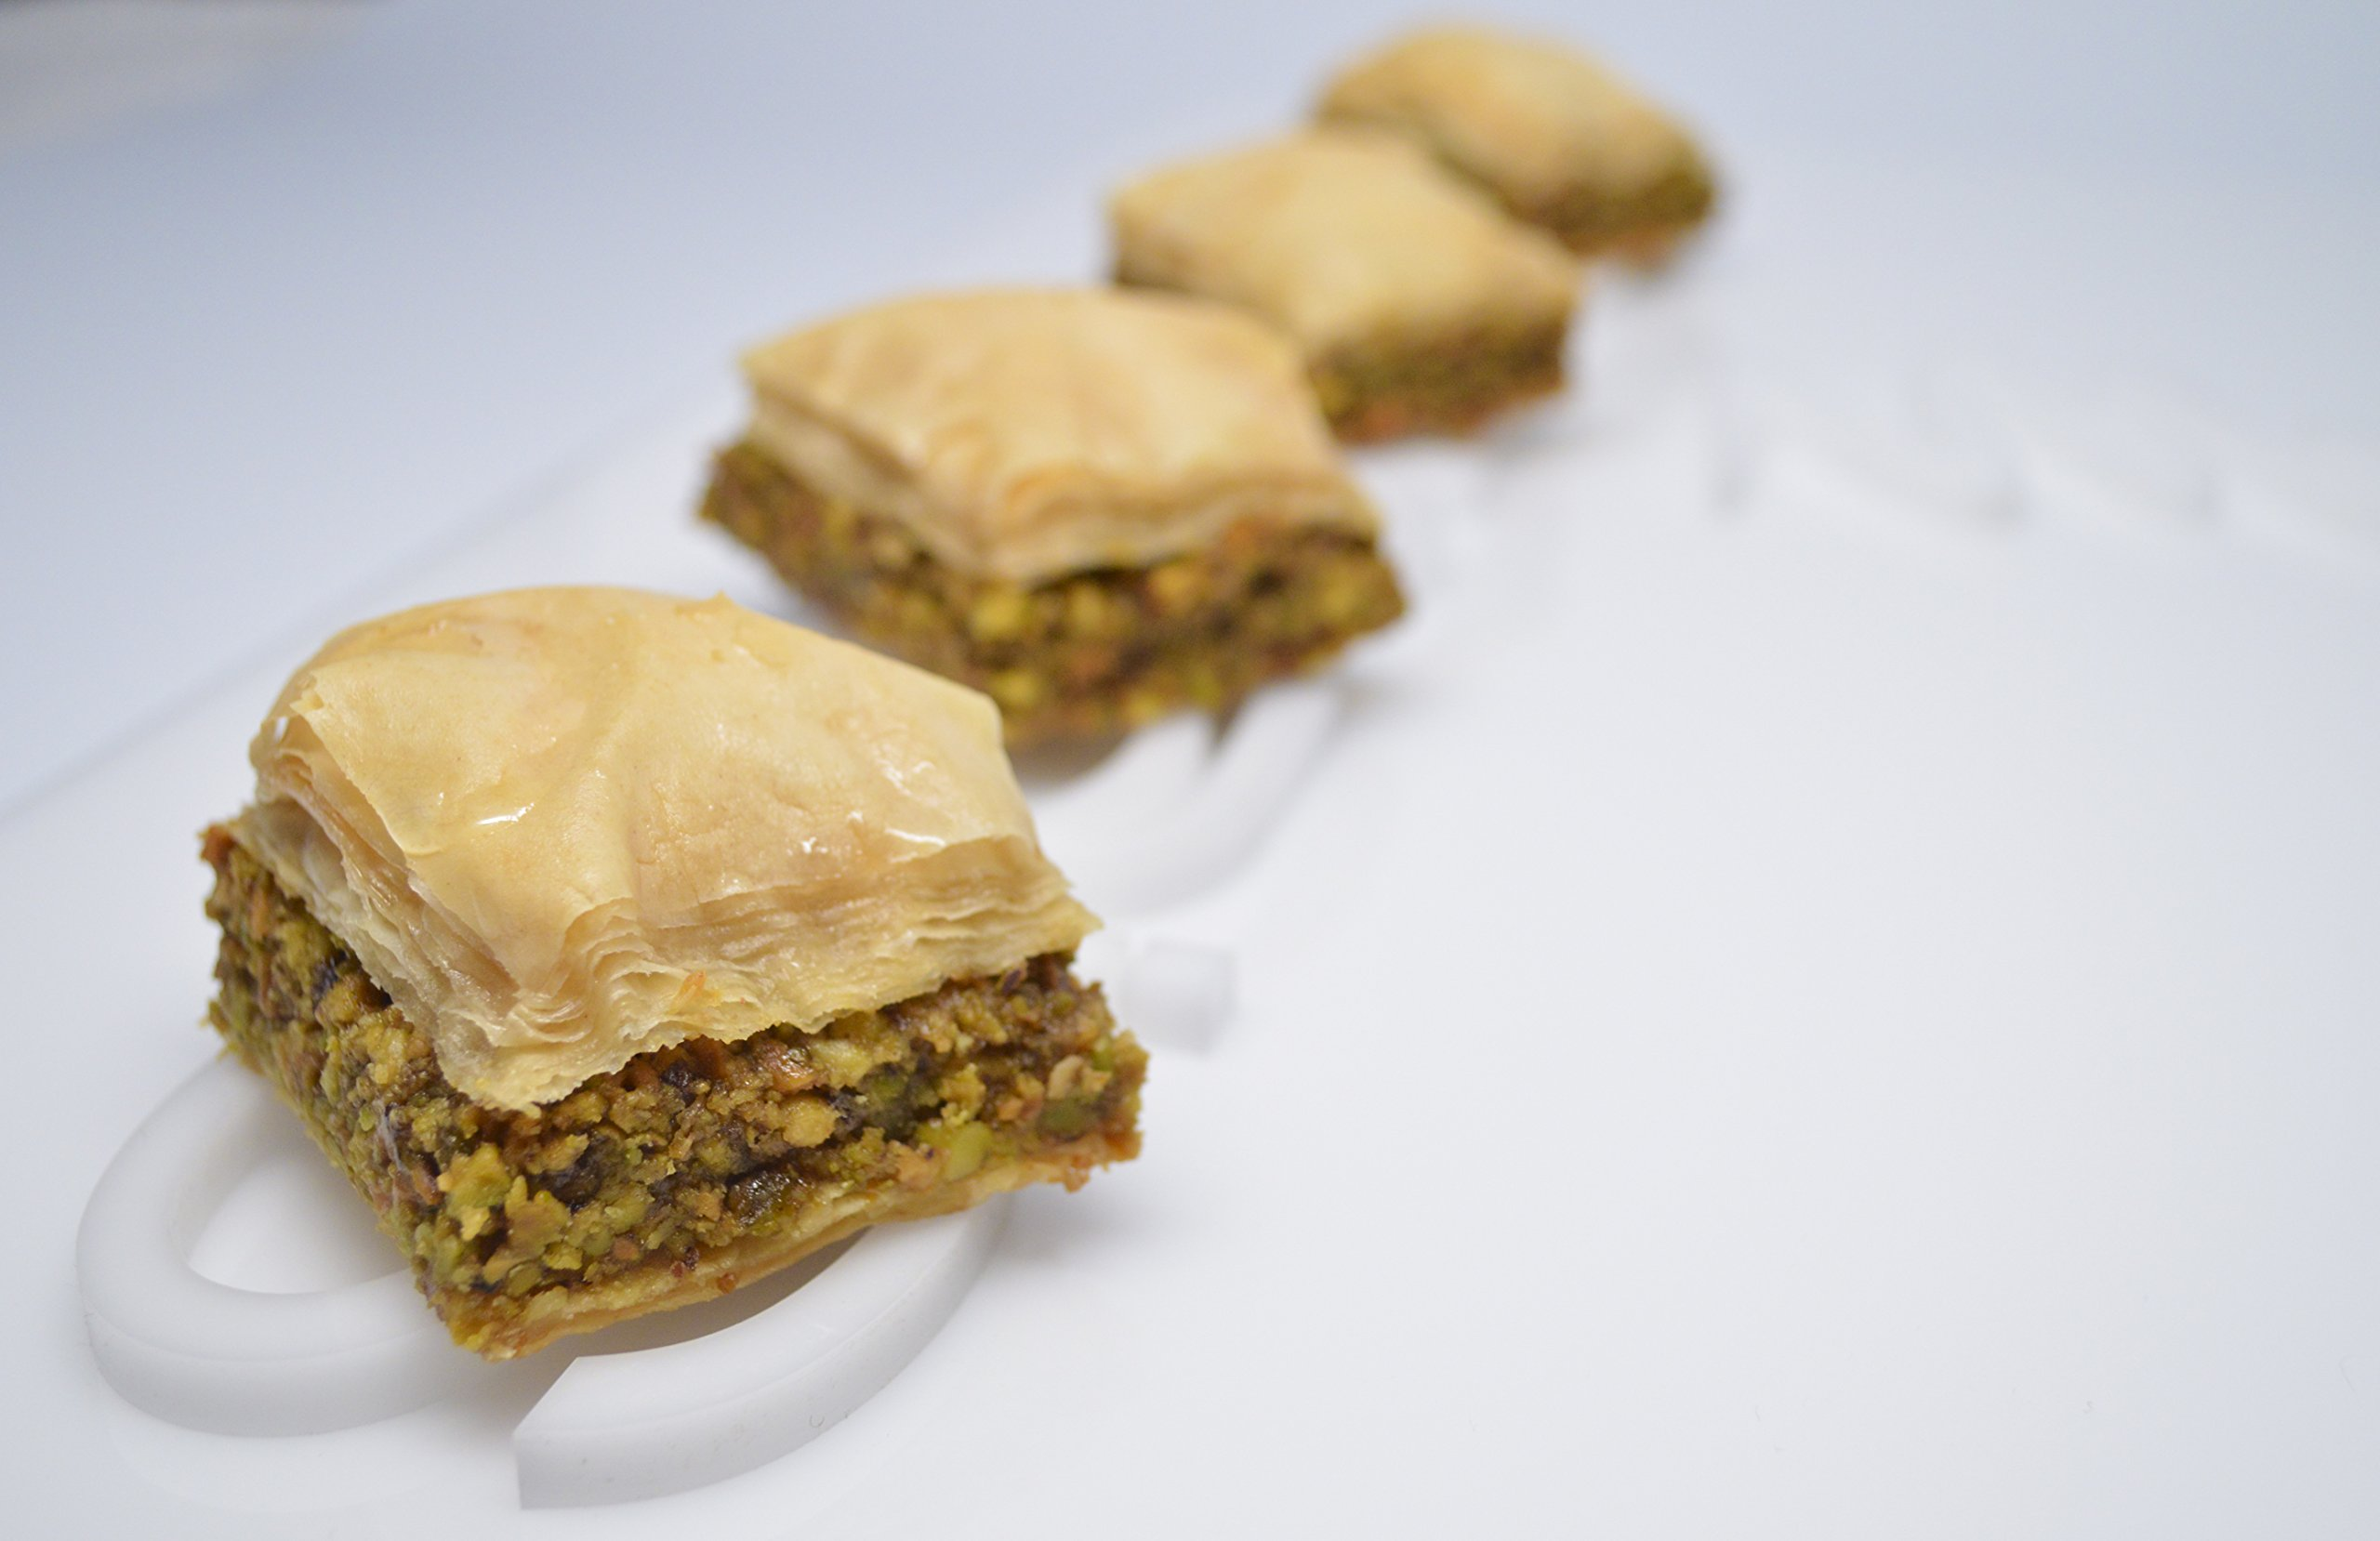 Baklava Assortment - 63 Pc. by Libanais (Image #7)